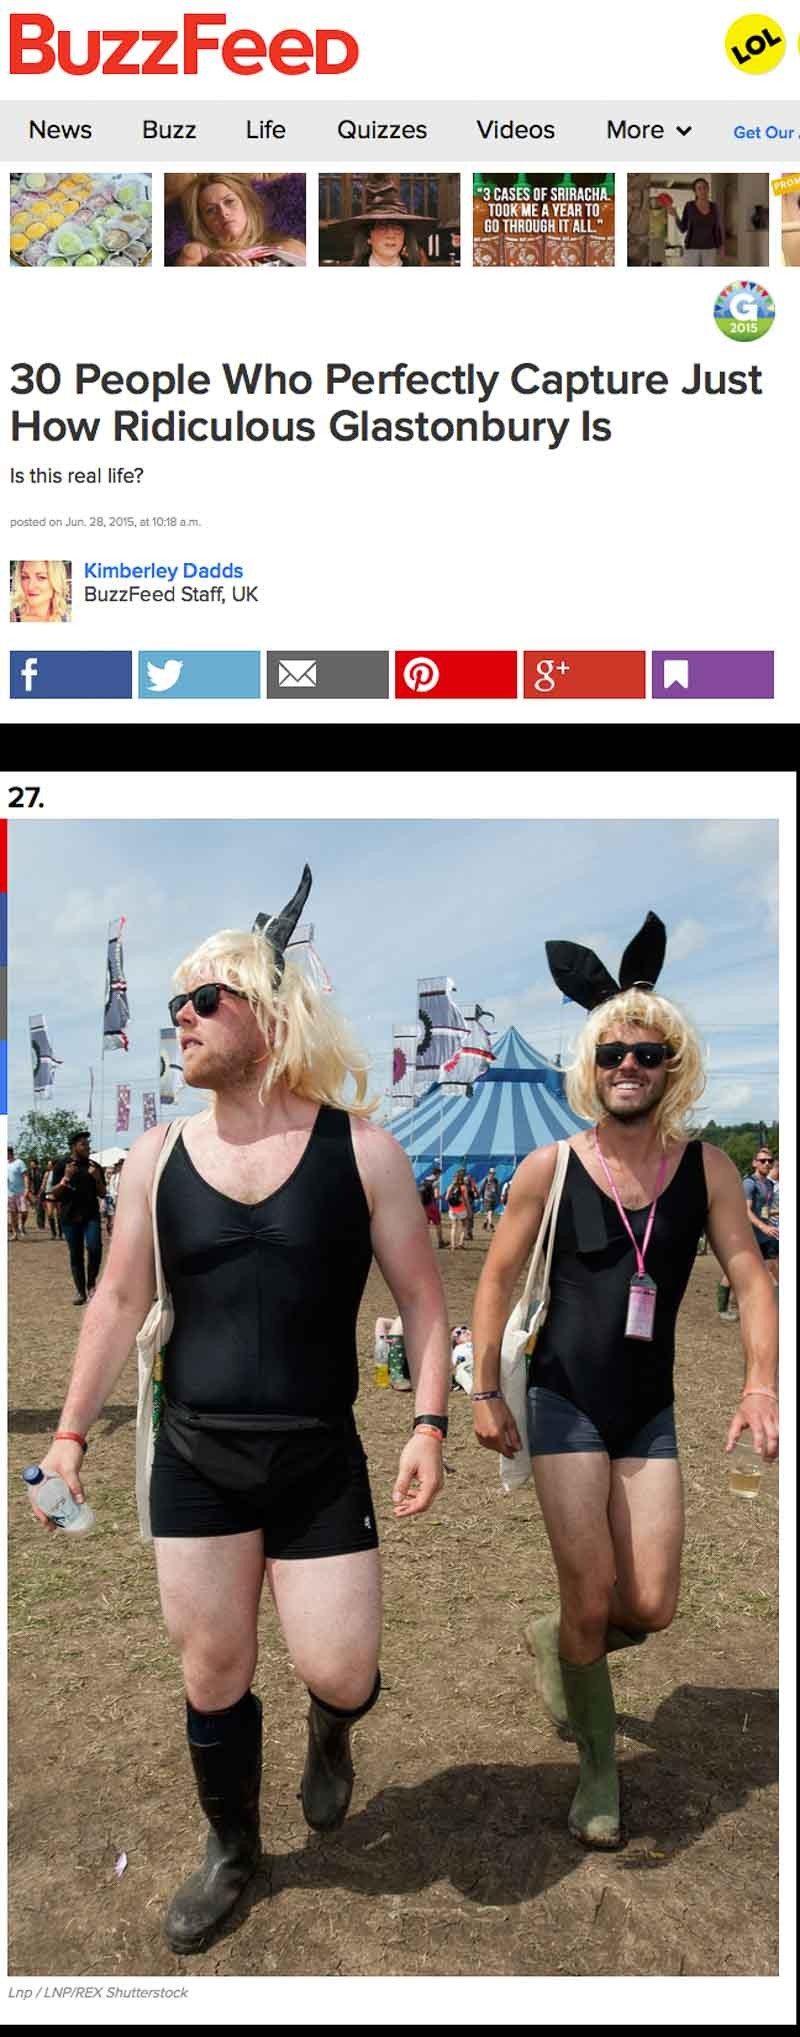 Image usage - Buzzfeed June 2015 - Glastonbury Festival 2015